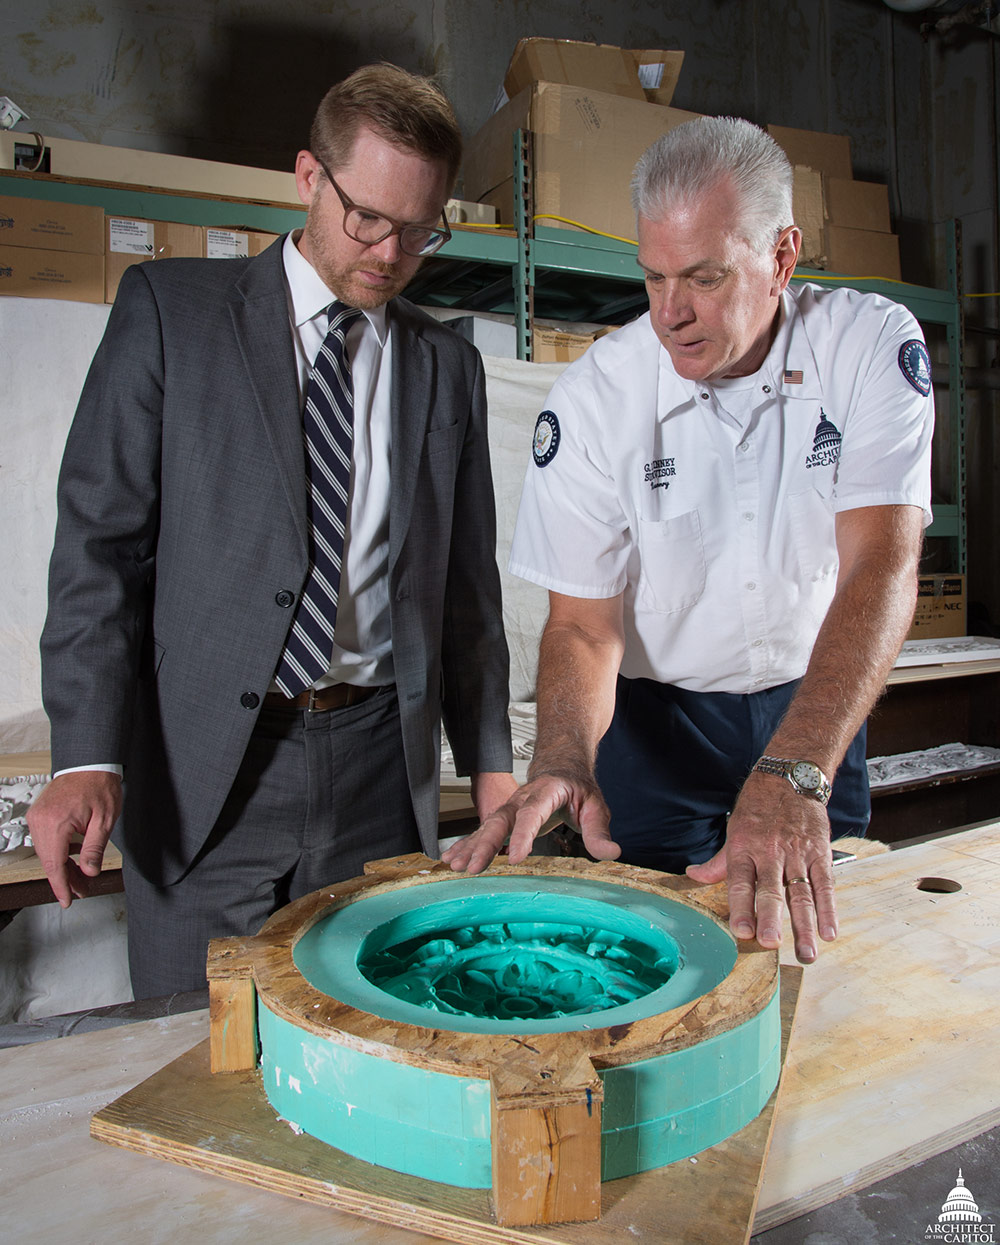 Assistant Superintendent for Tenant Services Paul Kirkpatrick learns more about the mold making process from Senate Masonry Branch Supervisor Glenn DeVinney, who has been with the Architect of the Capitol for 20 years.